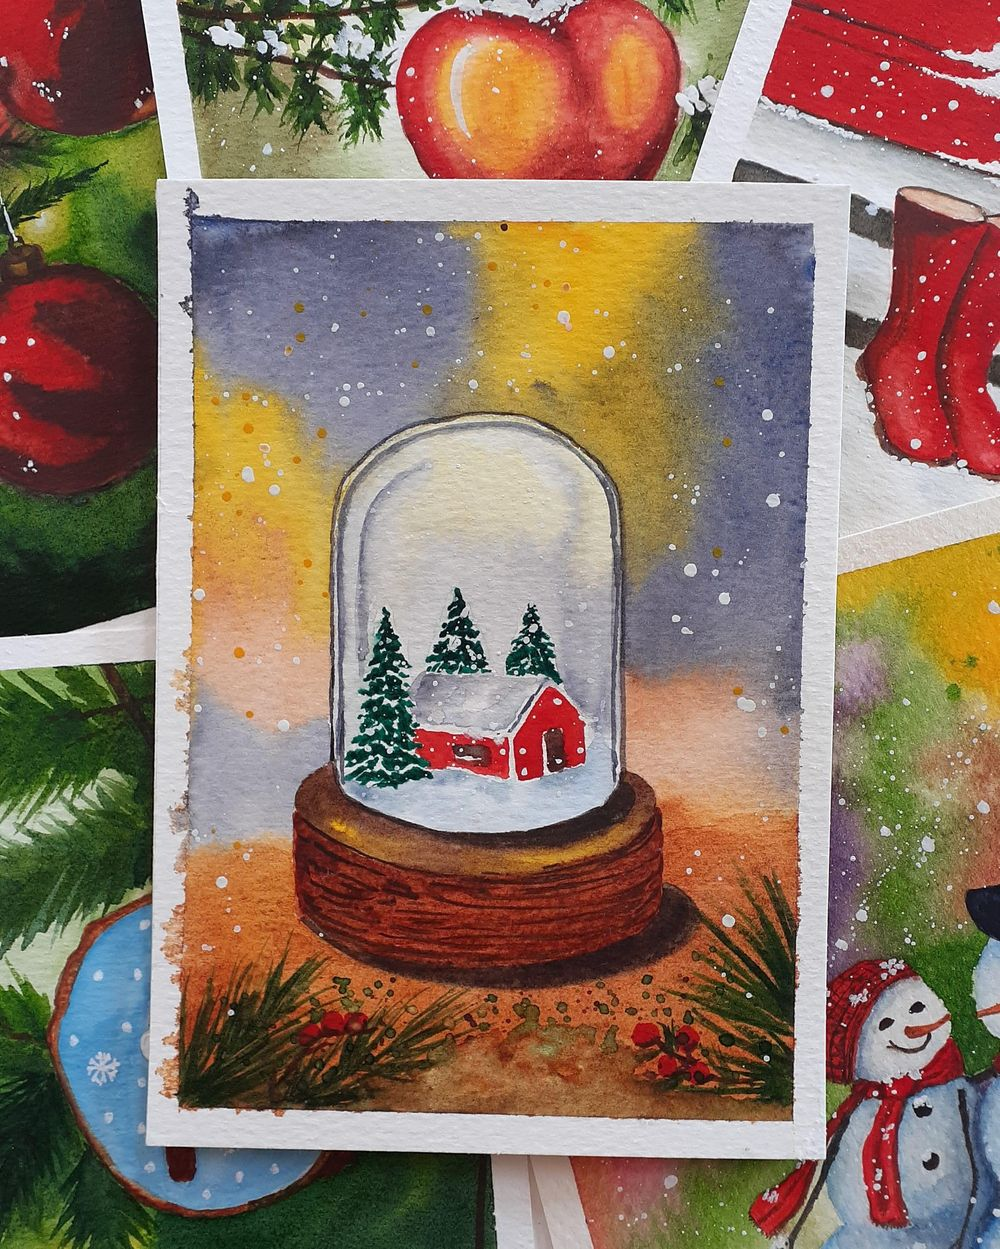 Countdown to Christmas with 24 Beautiful Paintings - image 13 - student project